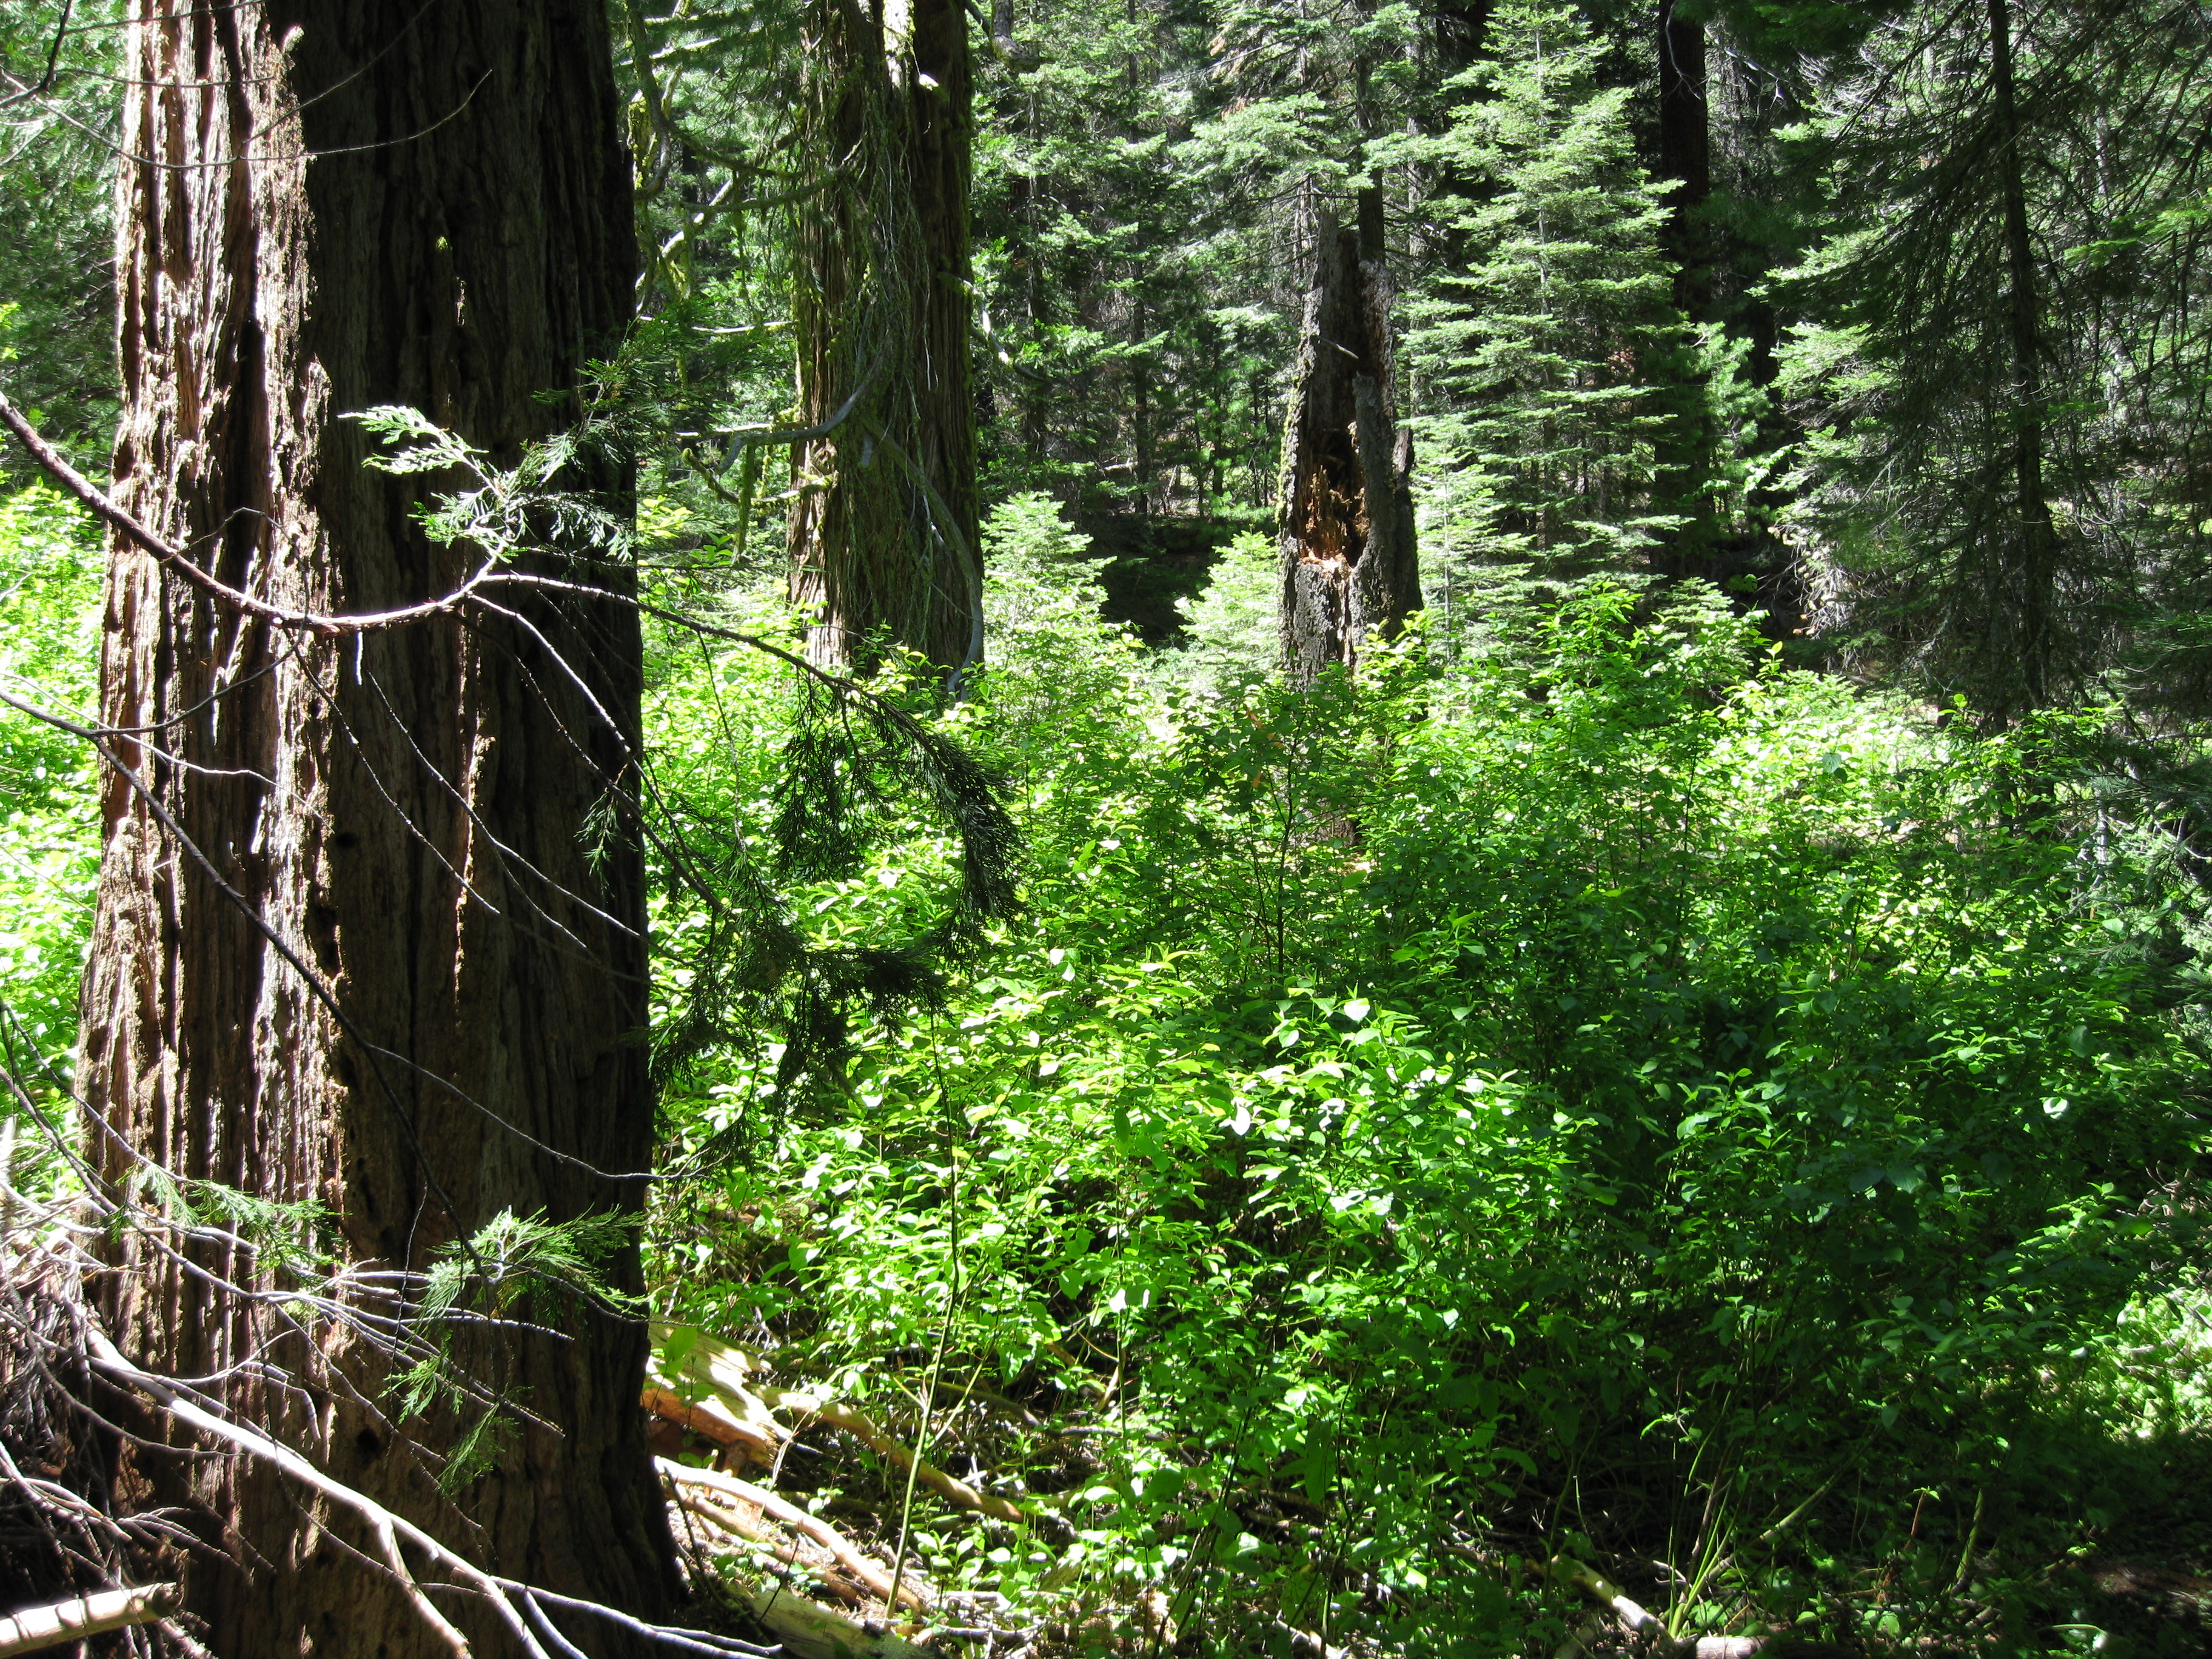 A handful of large-diameter trees per acre, such as these incense cedars, together with remains of big trees like the three-foot-wide white fir snag and downed debris account for half the forest biomass at a Yosemite National park study site.